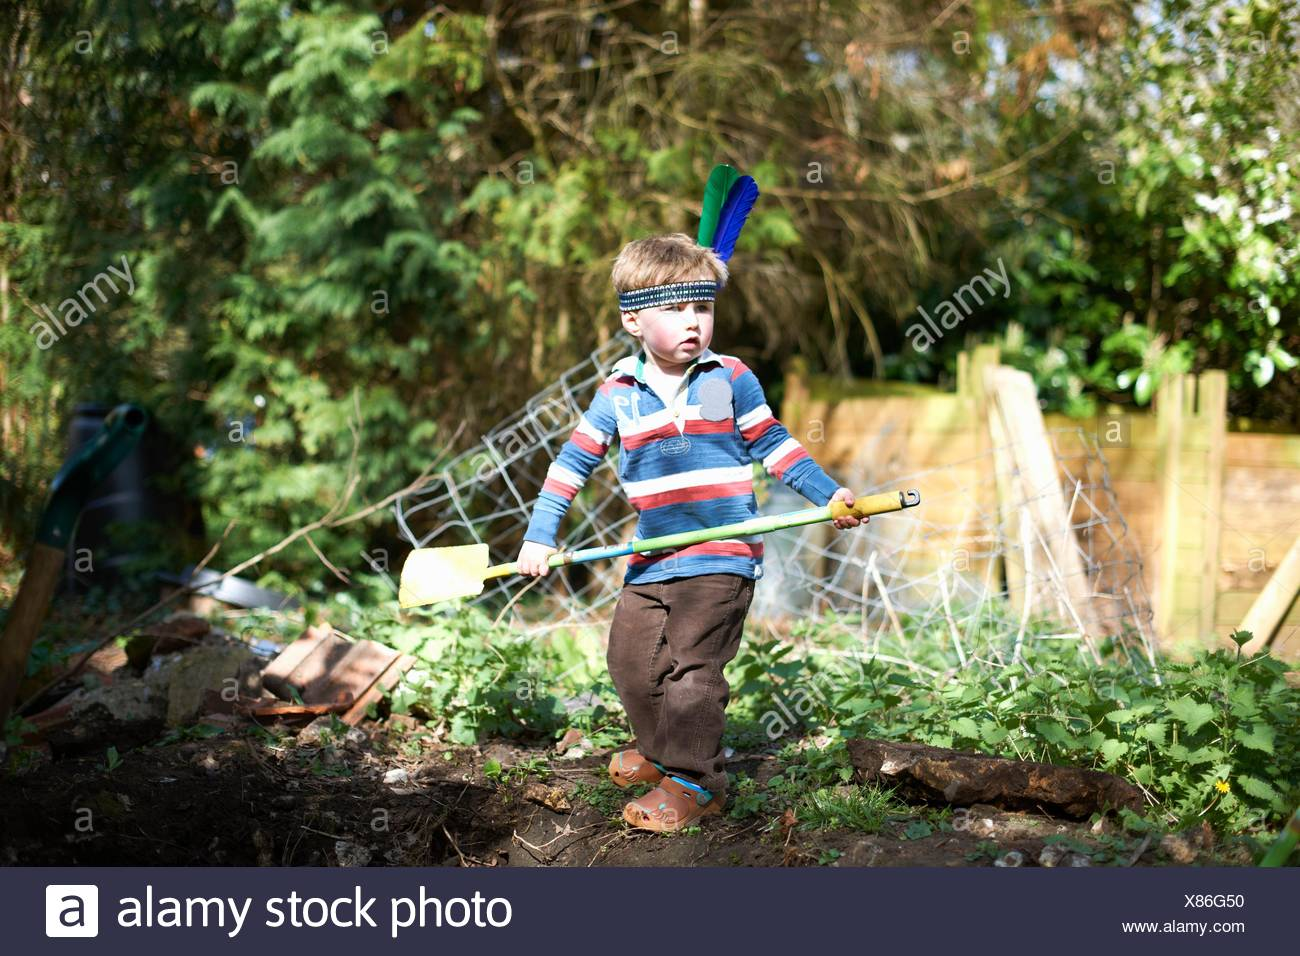 Young boy wearing headband with feathers, holding spade - Stock Image